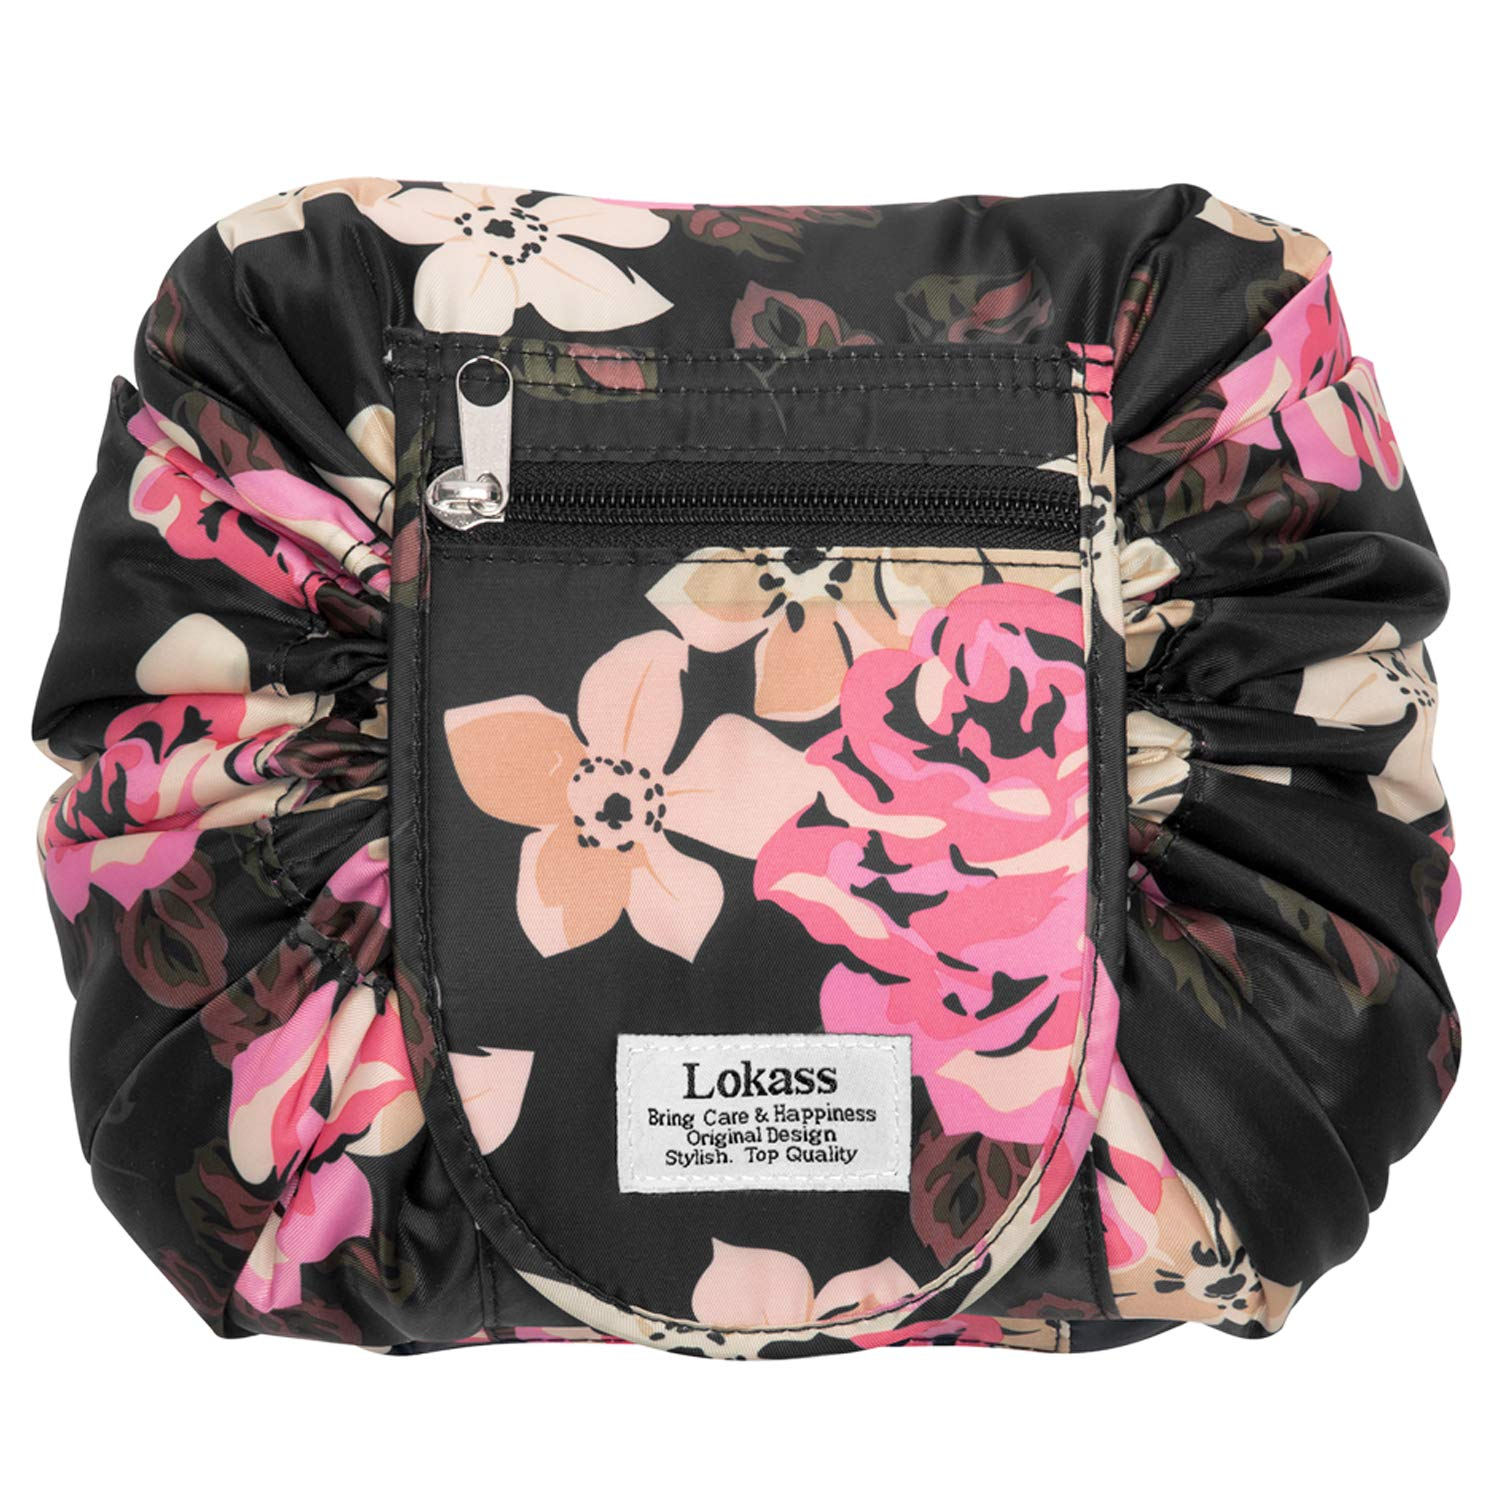 Drawstring Cosmetic Bag Lazy Travel Makeup Bag Floral Make Up Storage Organizer Cute Magic Toiletry Pouch for Women Girls,Portable/Large/Waterproof/Flat-Open/Quick Pack/Fashion Pattern,Black Peony